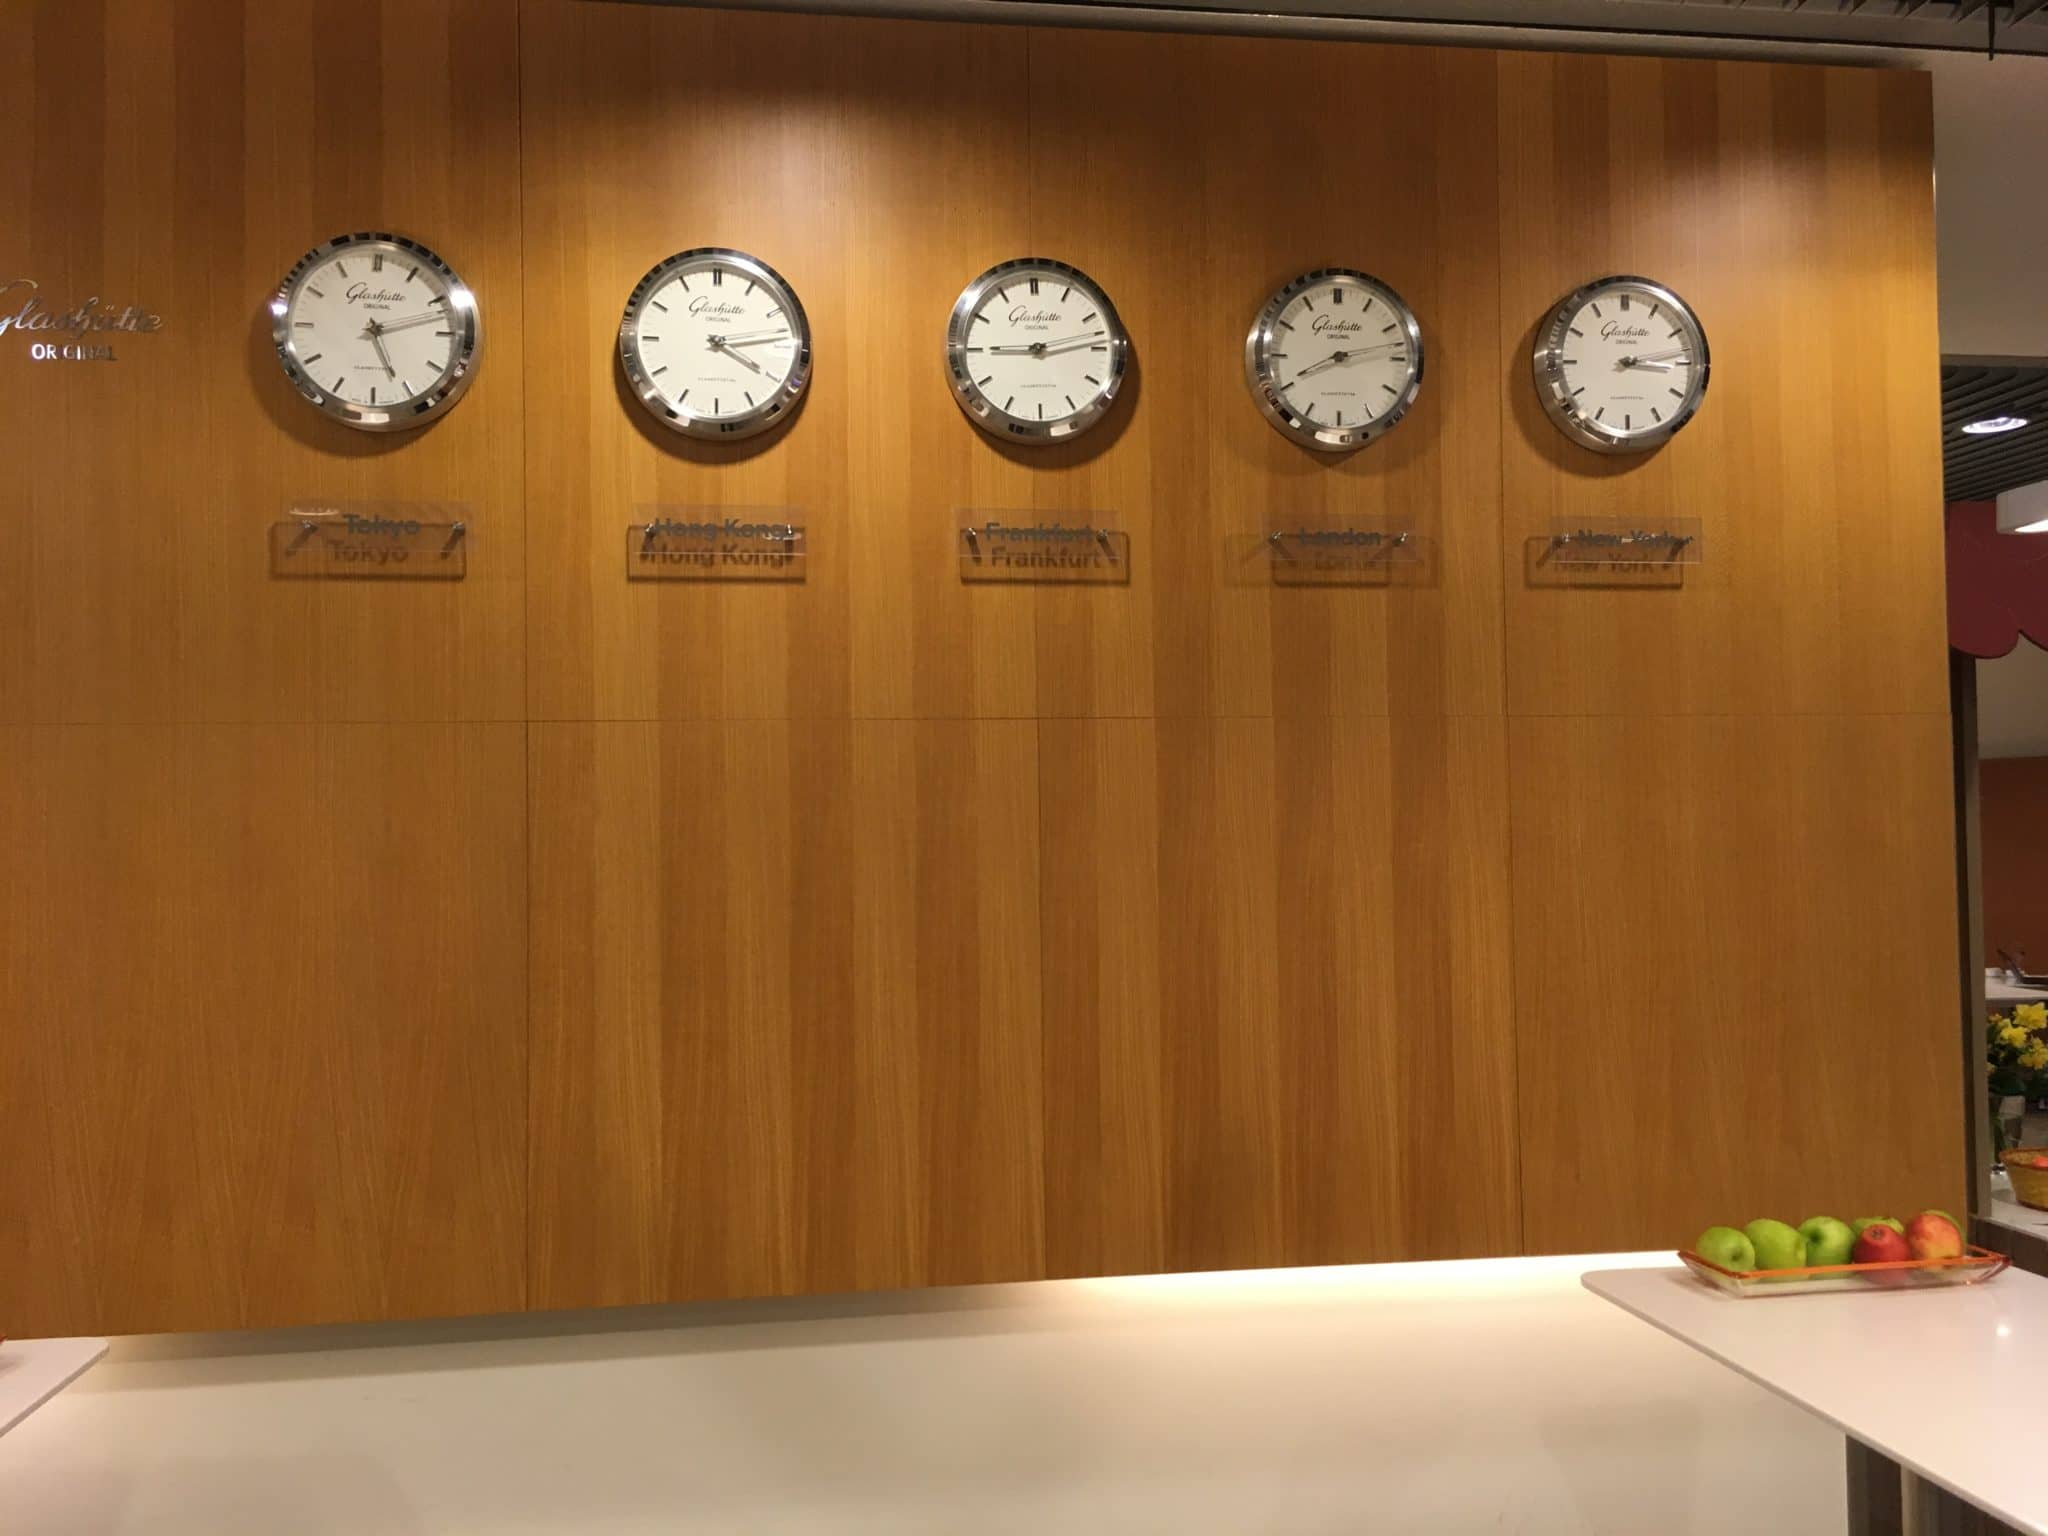 Lufthansa Senator Lounge Frankfurt B World Clocks